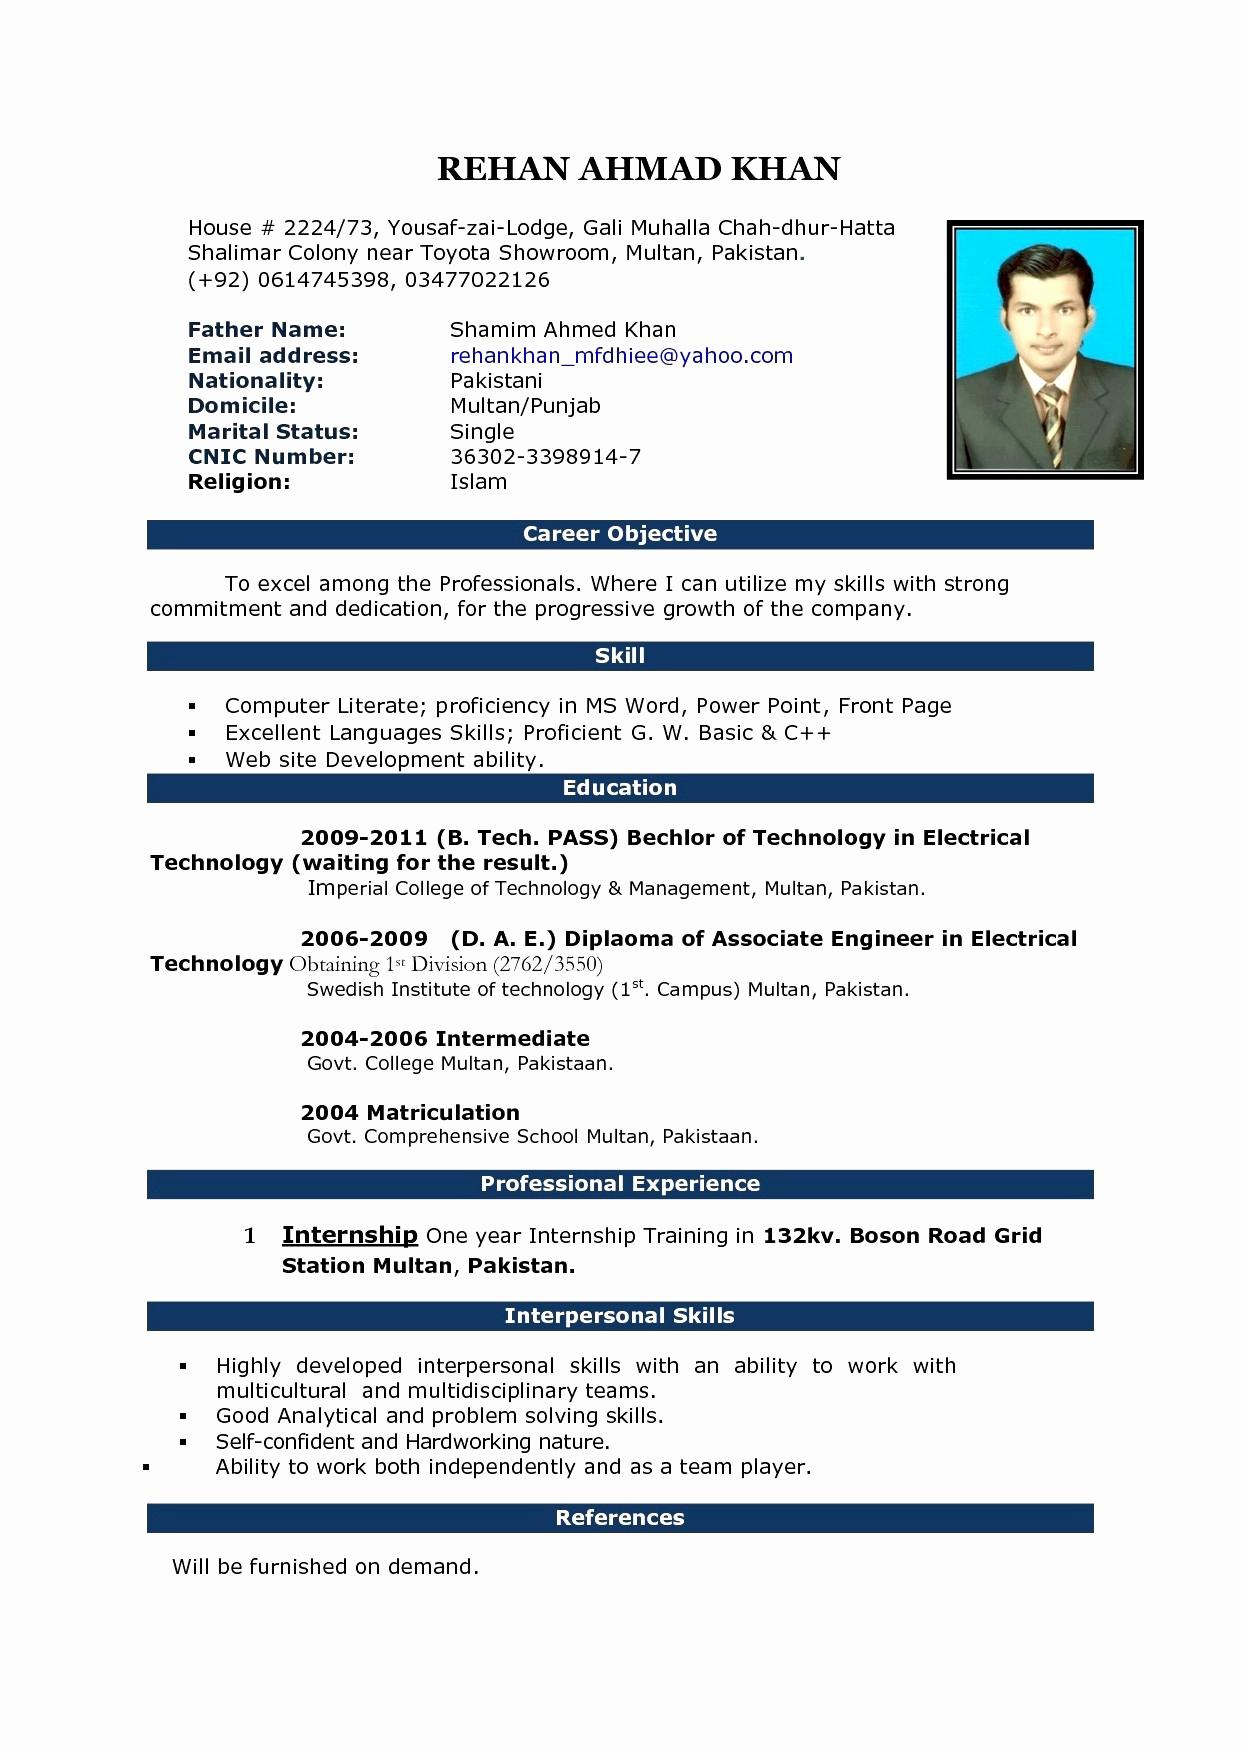 Resume with Picture Template - Web Designer Resume Word format Inspirational Best Pr Resume